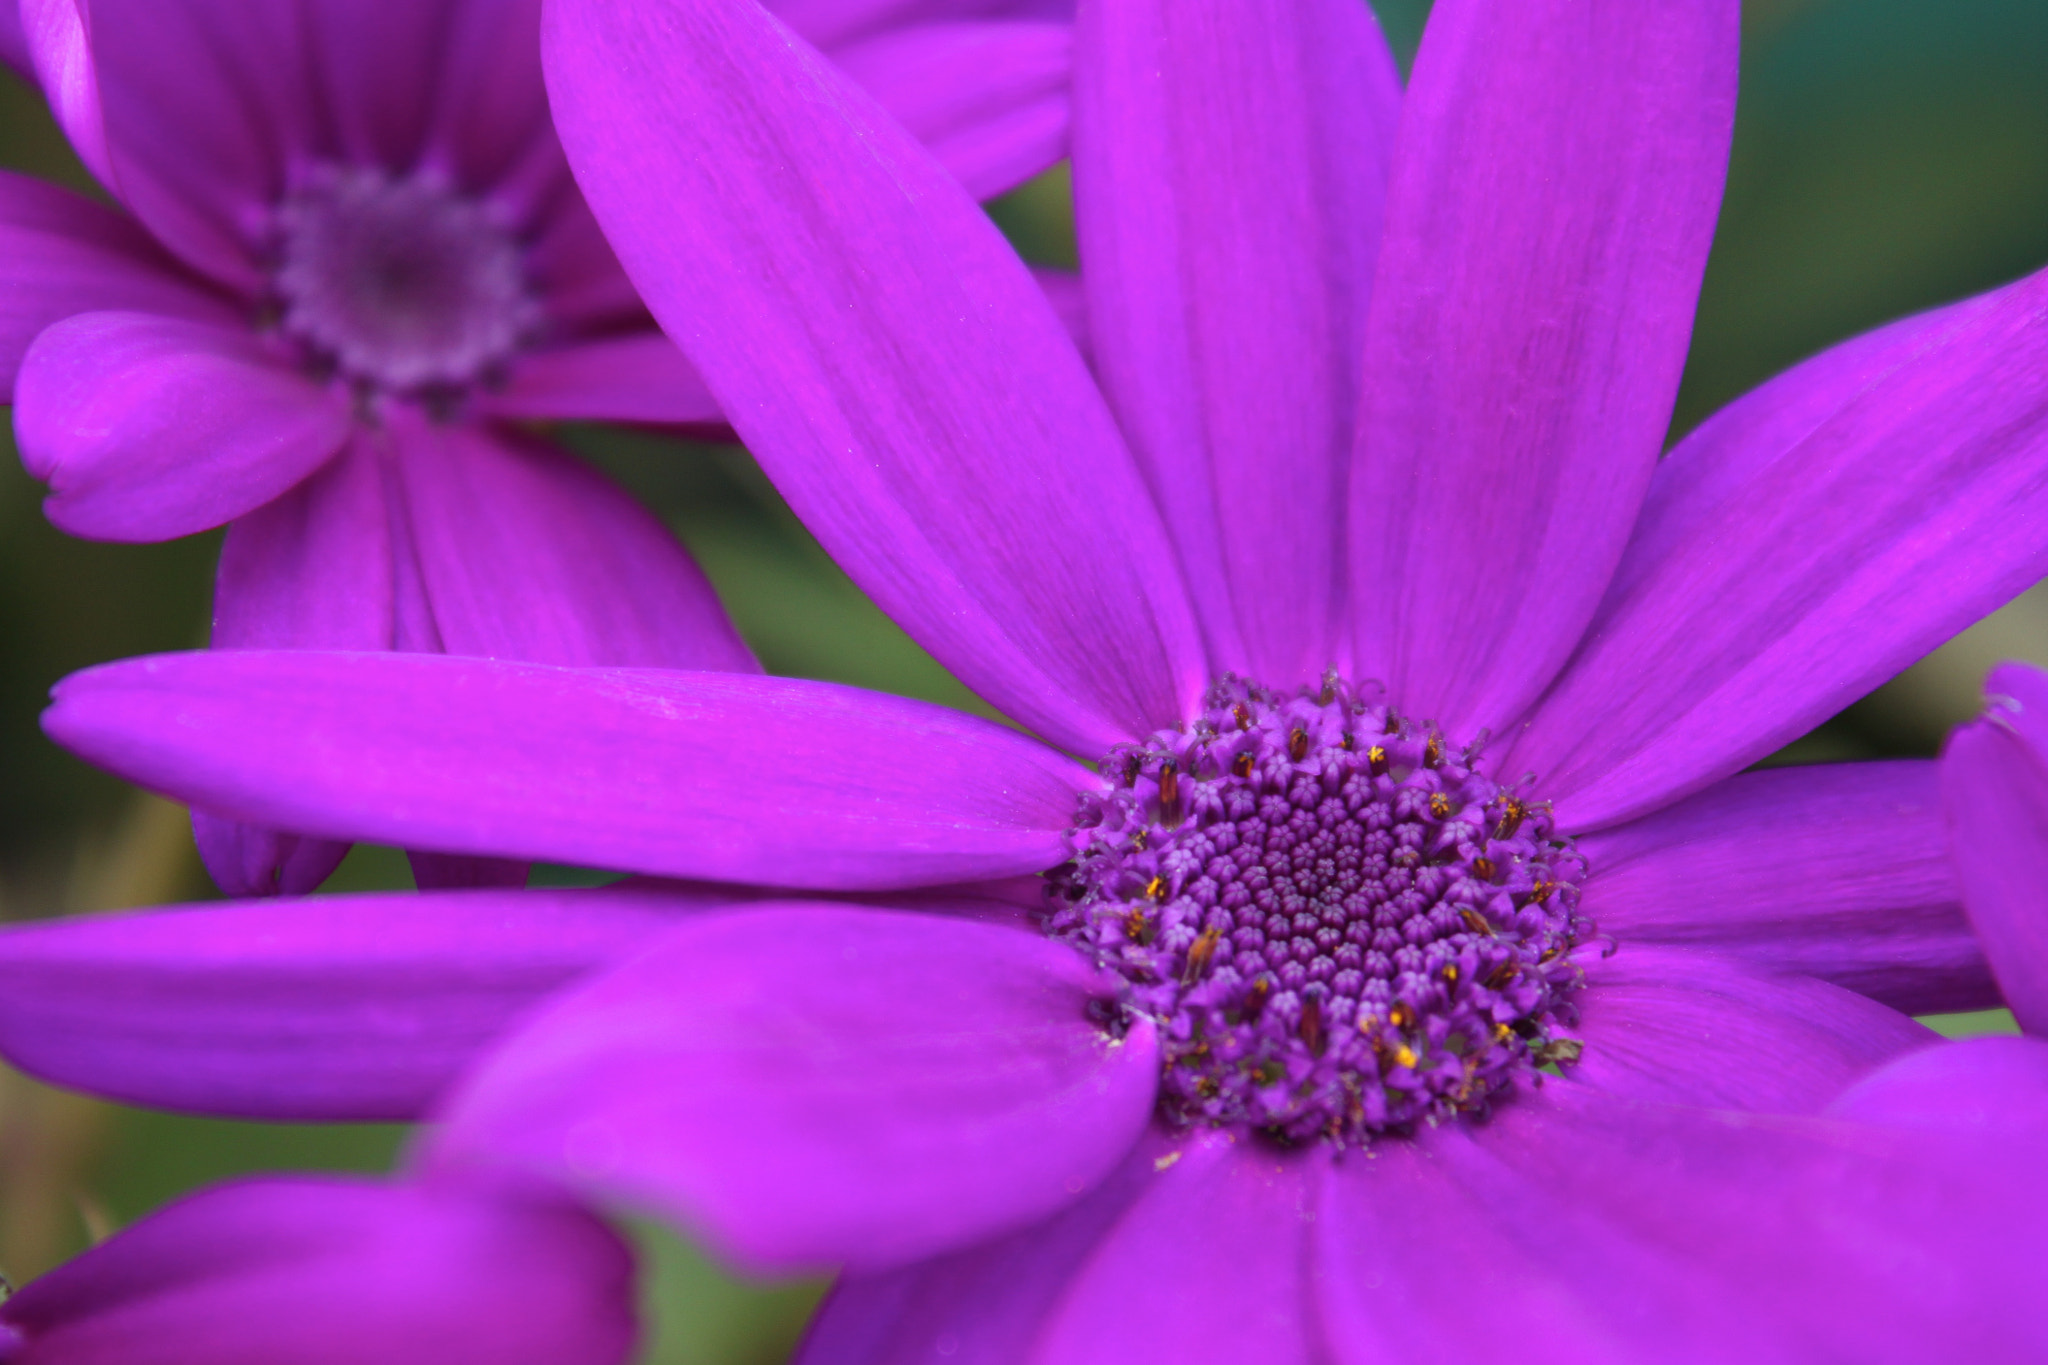 Photograph The Purple Flower by Amir Reza Afsharian on 500px